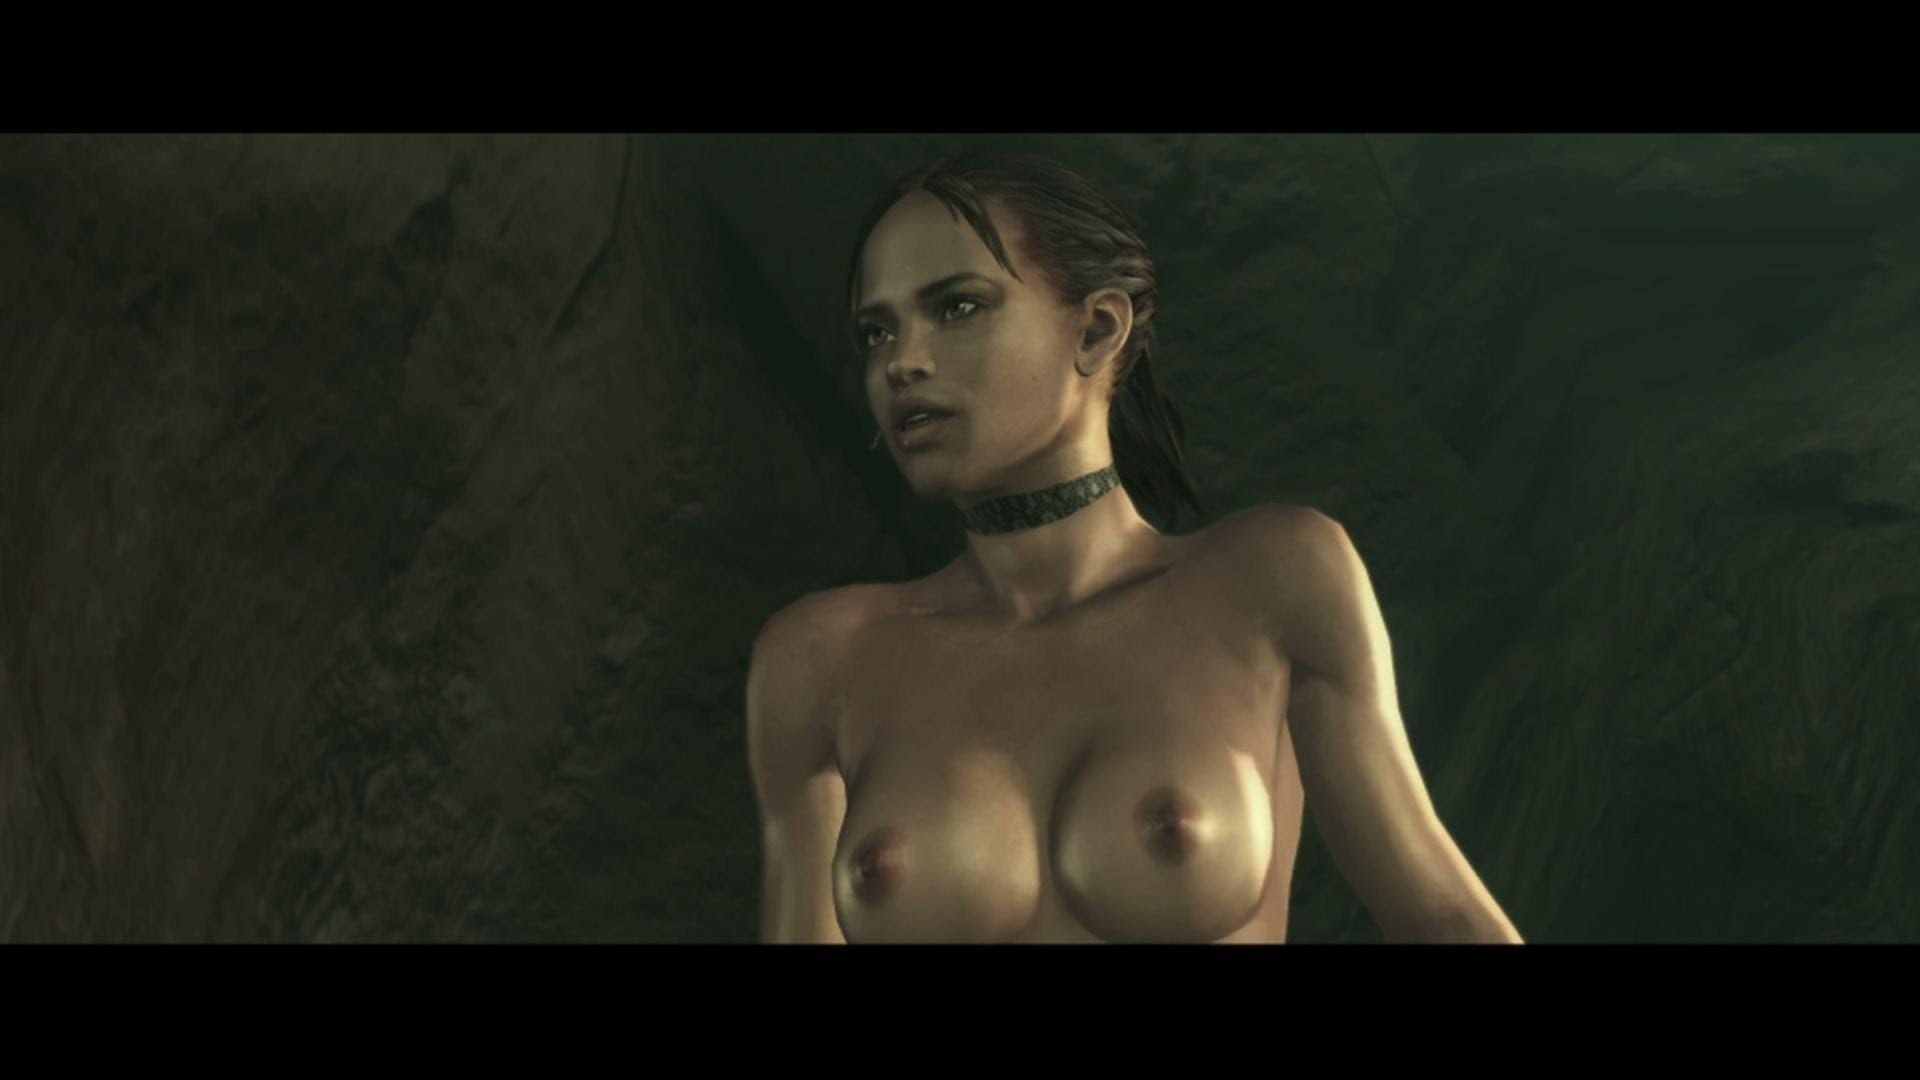 Sheva s big ass naked